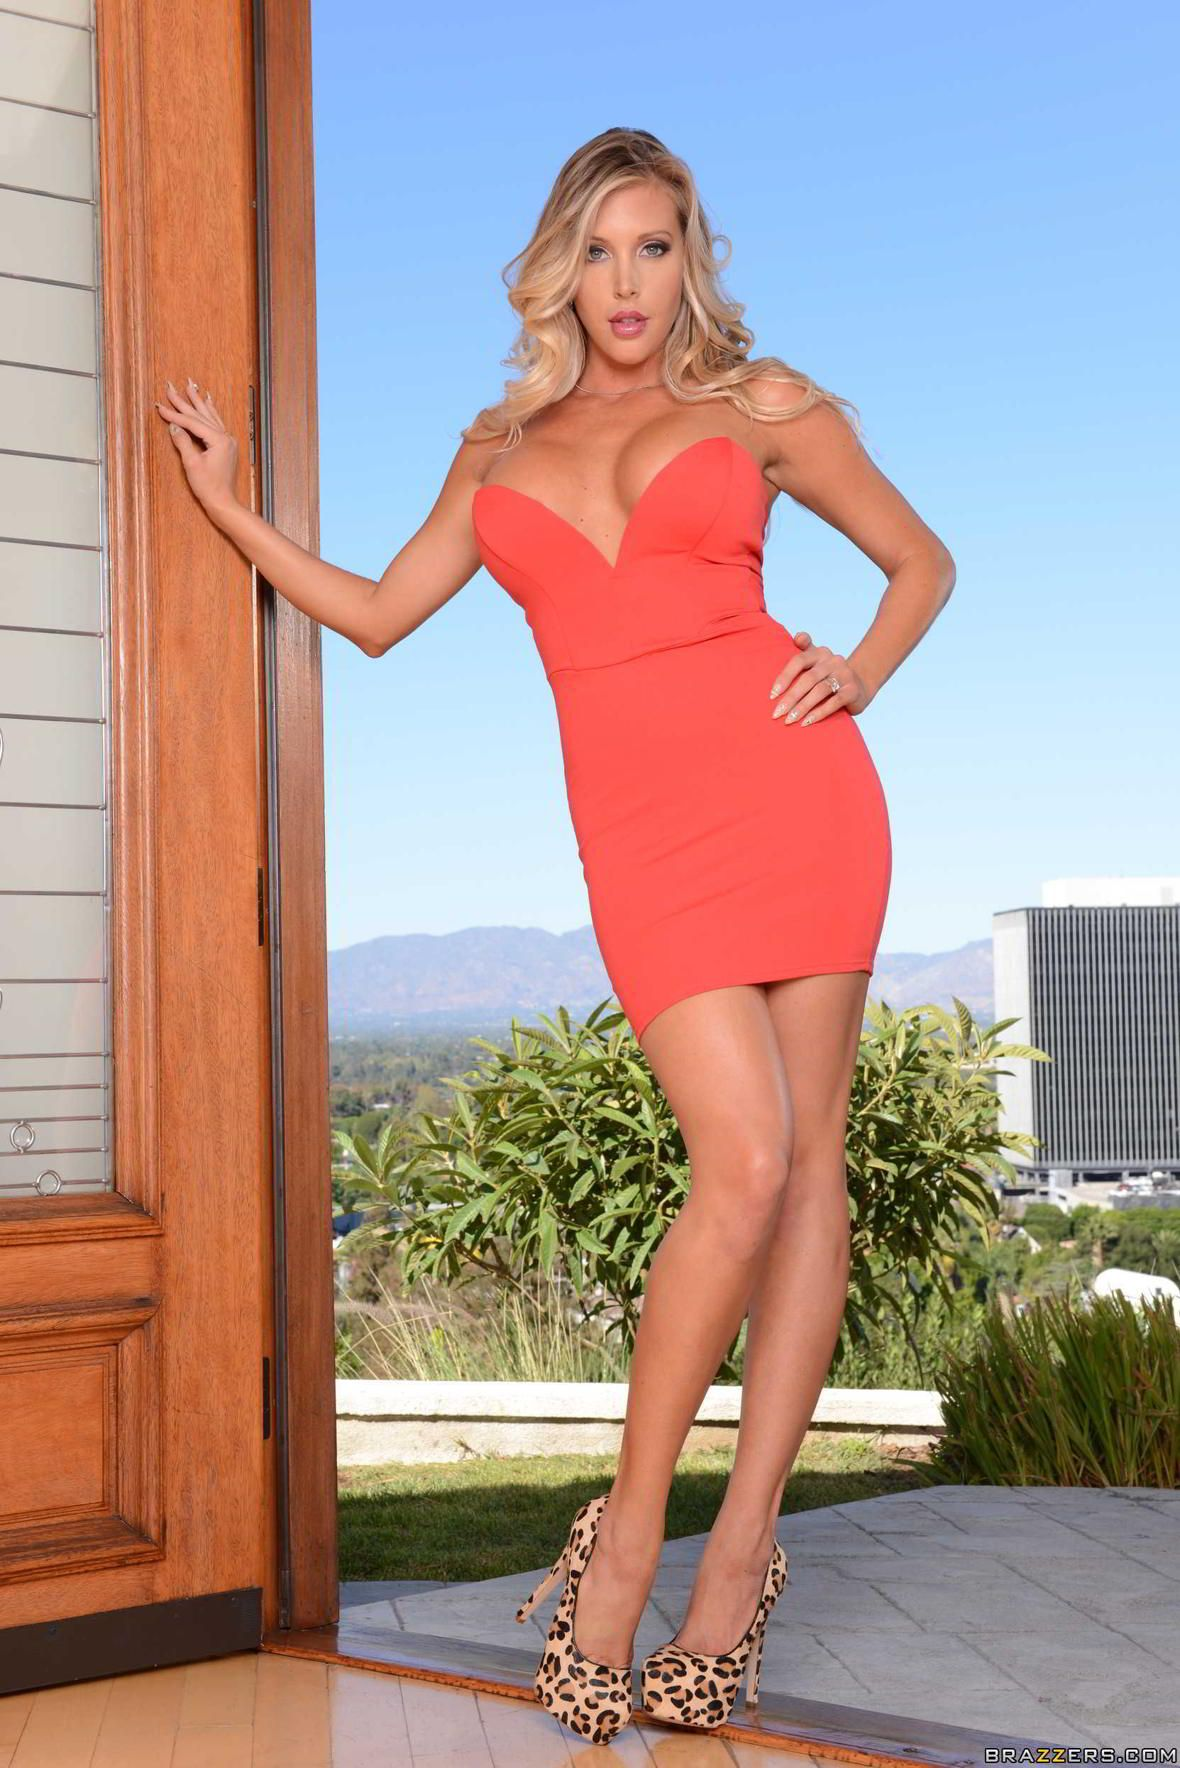 Venus Milf Hunter Awesome samantha saint | porn - samantha saint | pinterest | saints